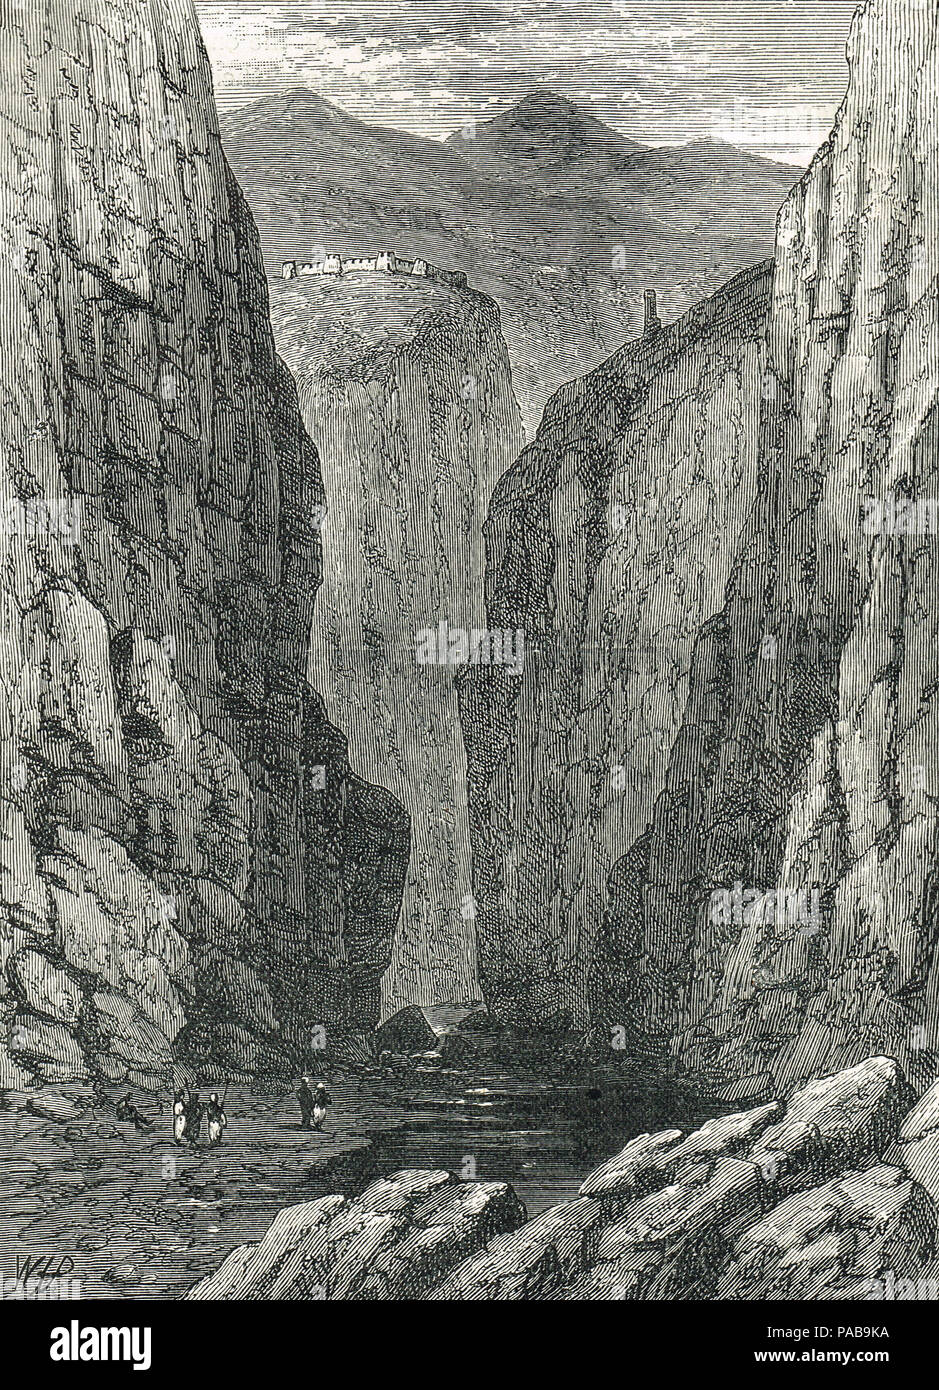 The fortress of Ali Masjid and the Khyber Pass, 1878 - Stock Image